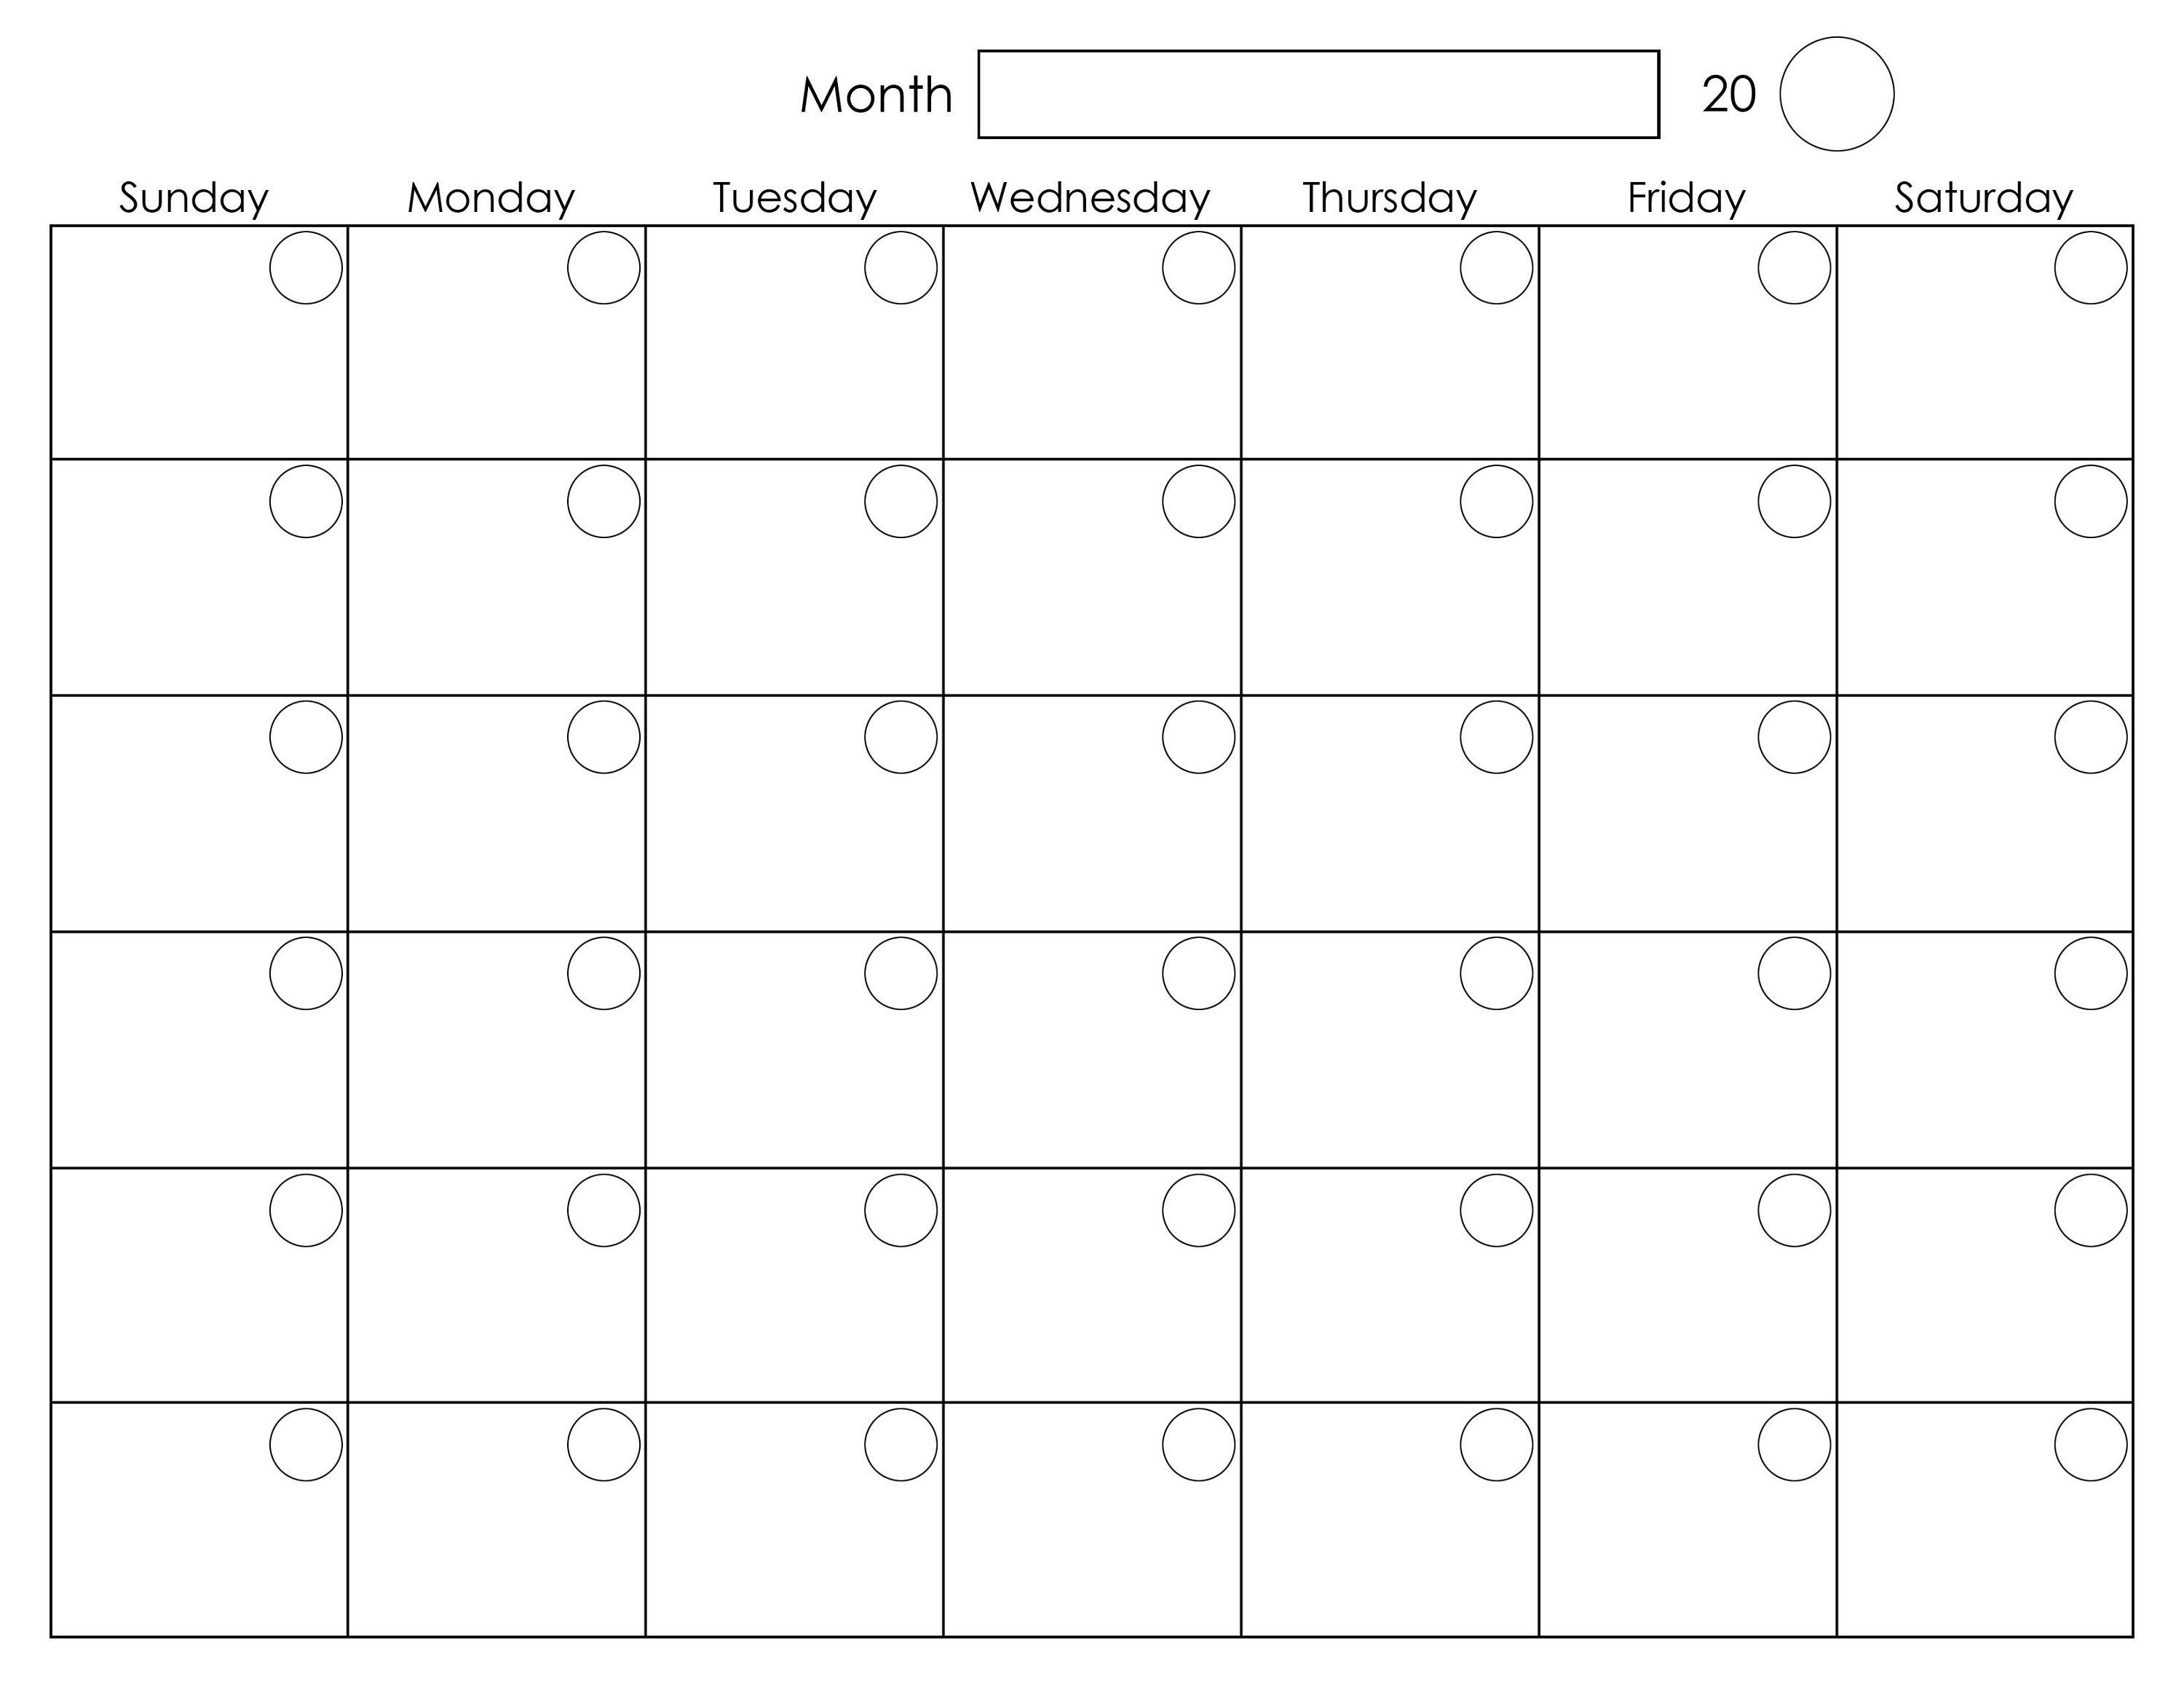 Printable Blank Monthly Calendar | Calendar Template Printable with regard to Blank Monthly Planner Free Printable